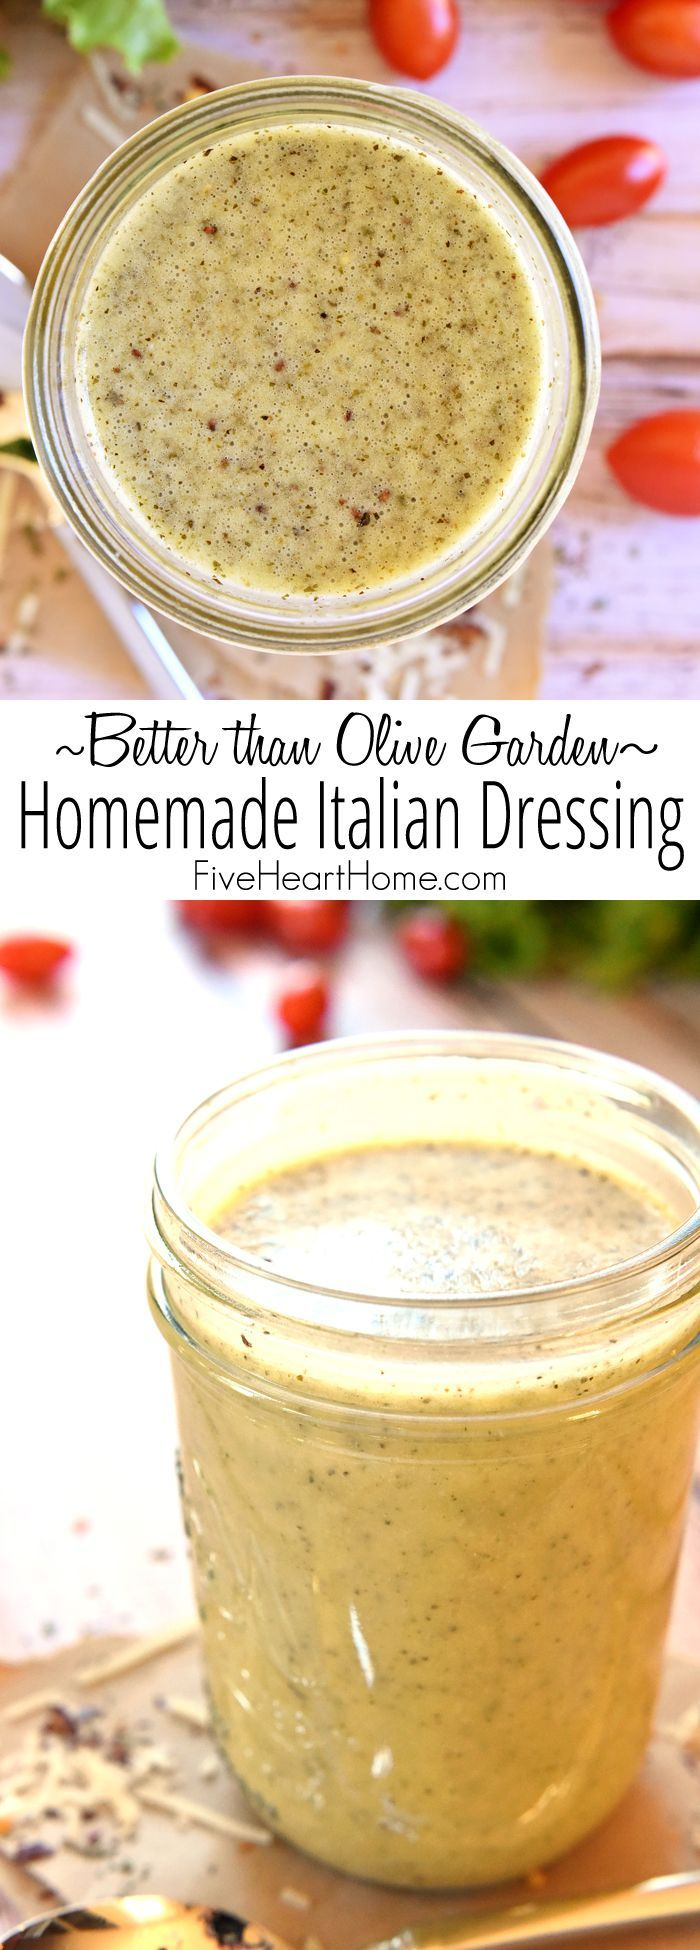 17 Best Ideas About Olive Garden Salad On Pinterest Olive Restaurant Olive Garden Alfredo